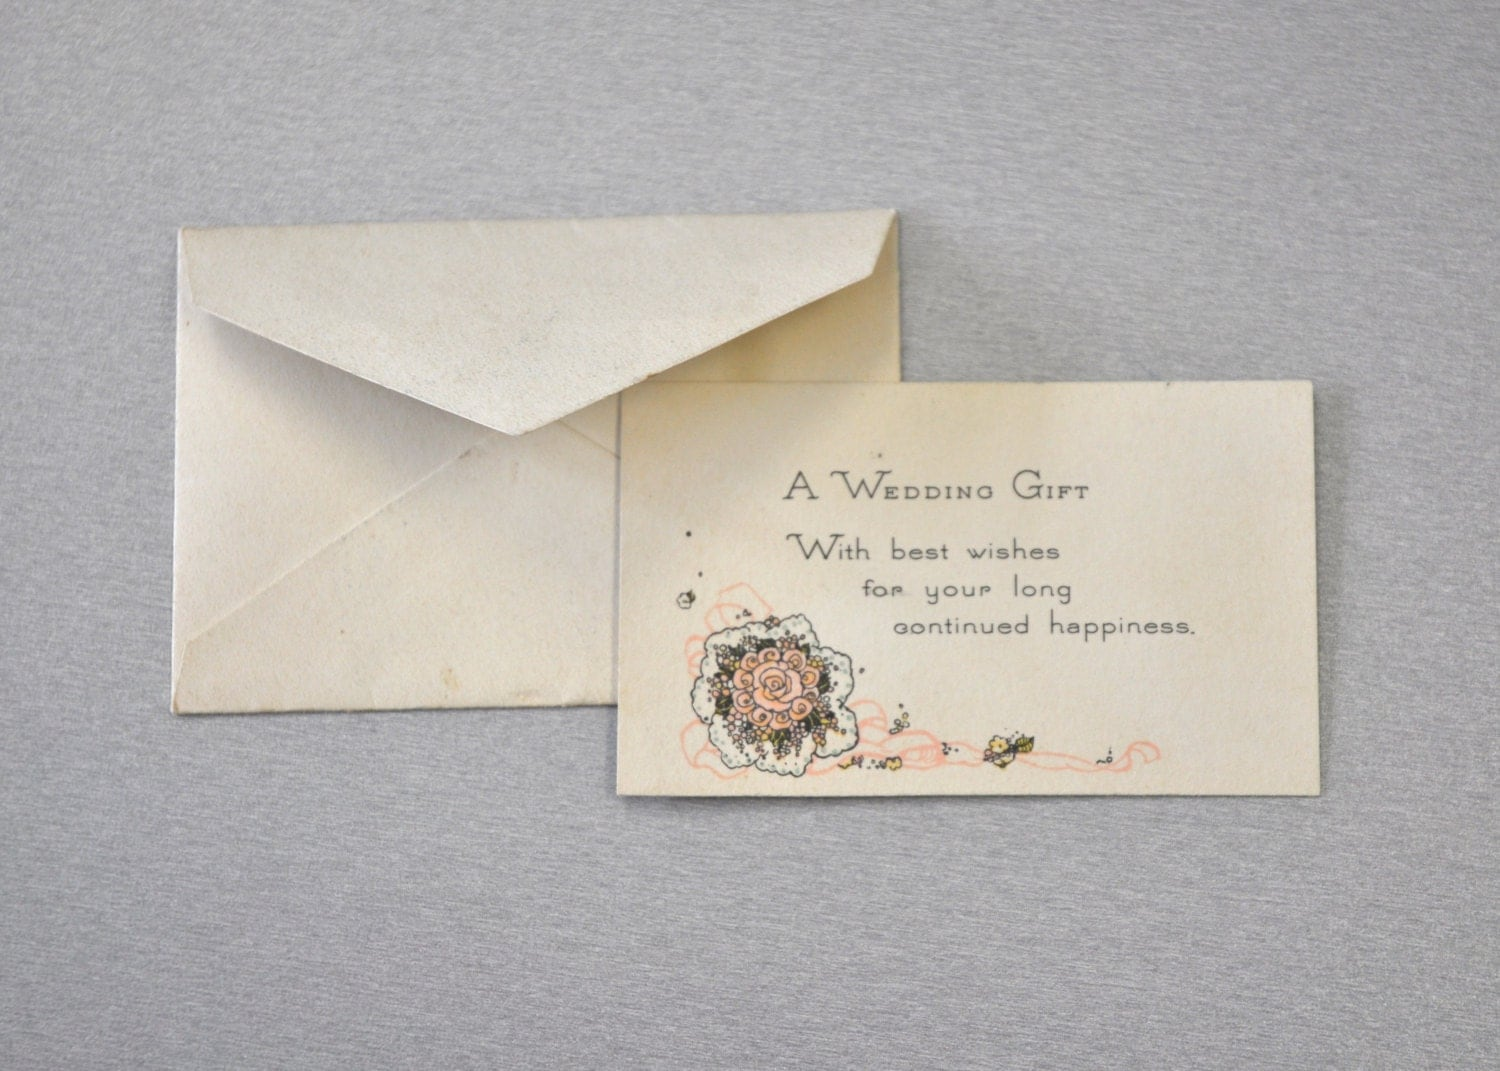 Wedding Gift Card Uk : Tiny Vintage Wedding Gift Card with Envelope